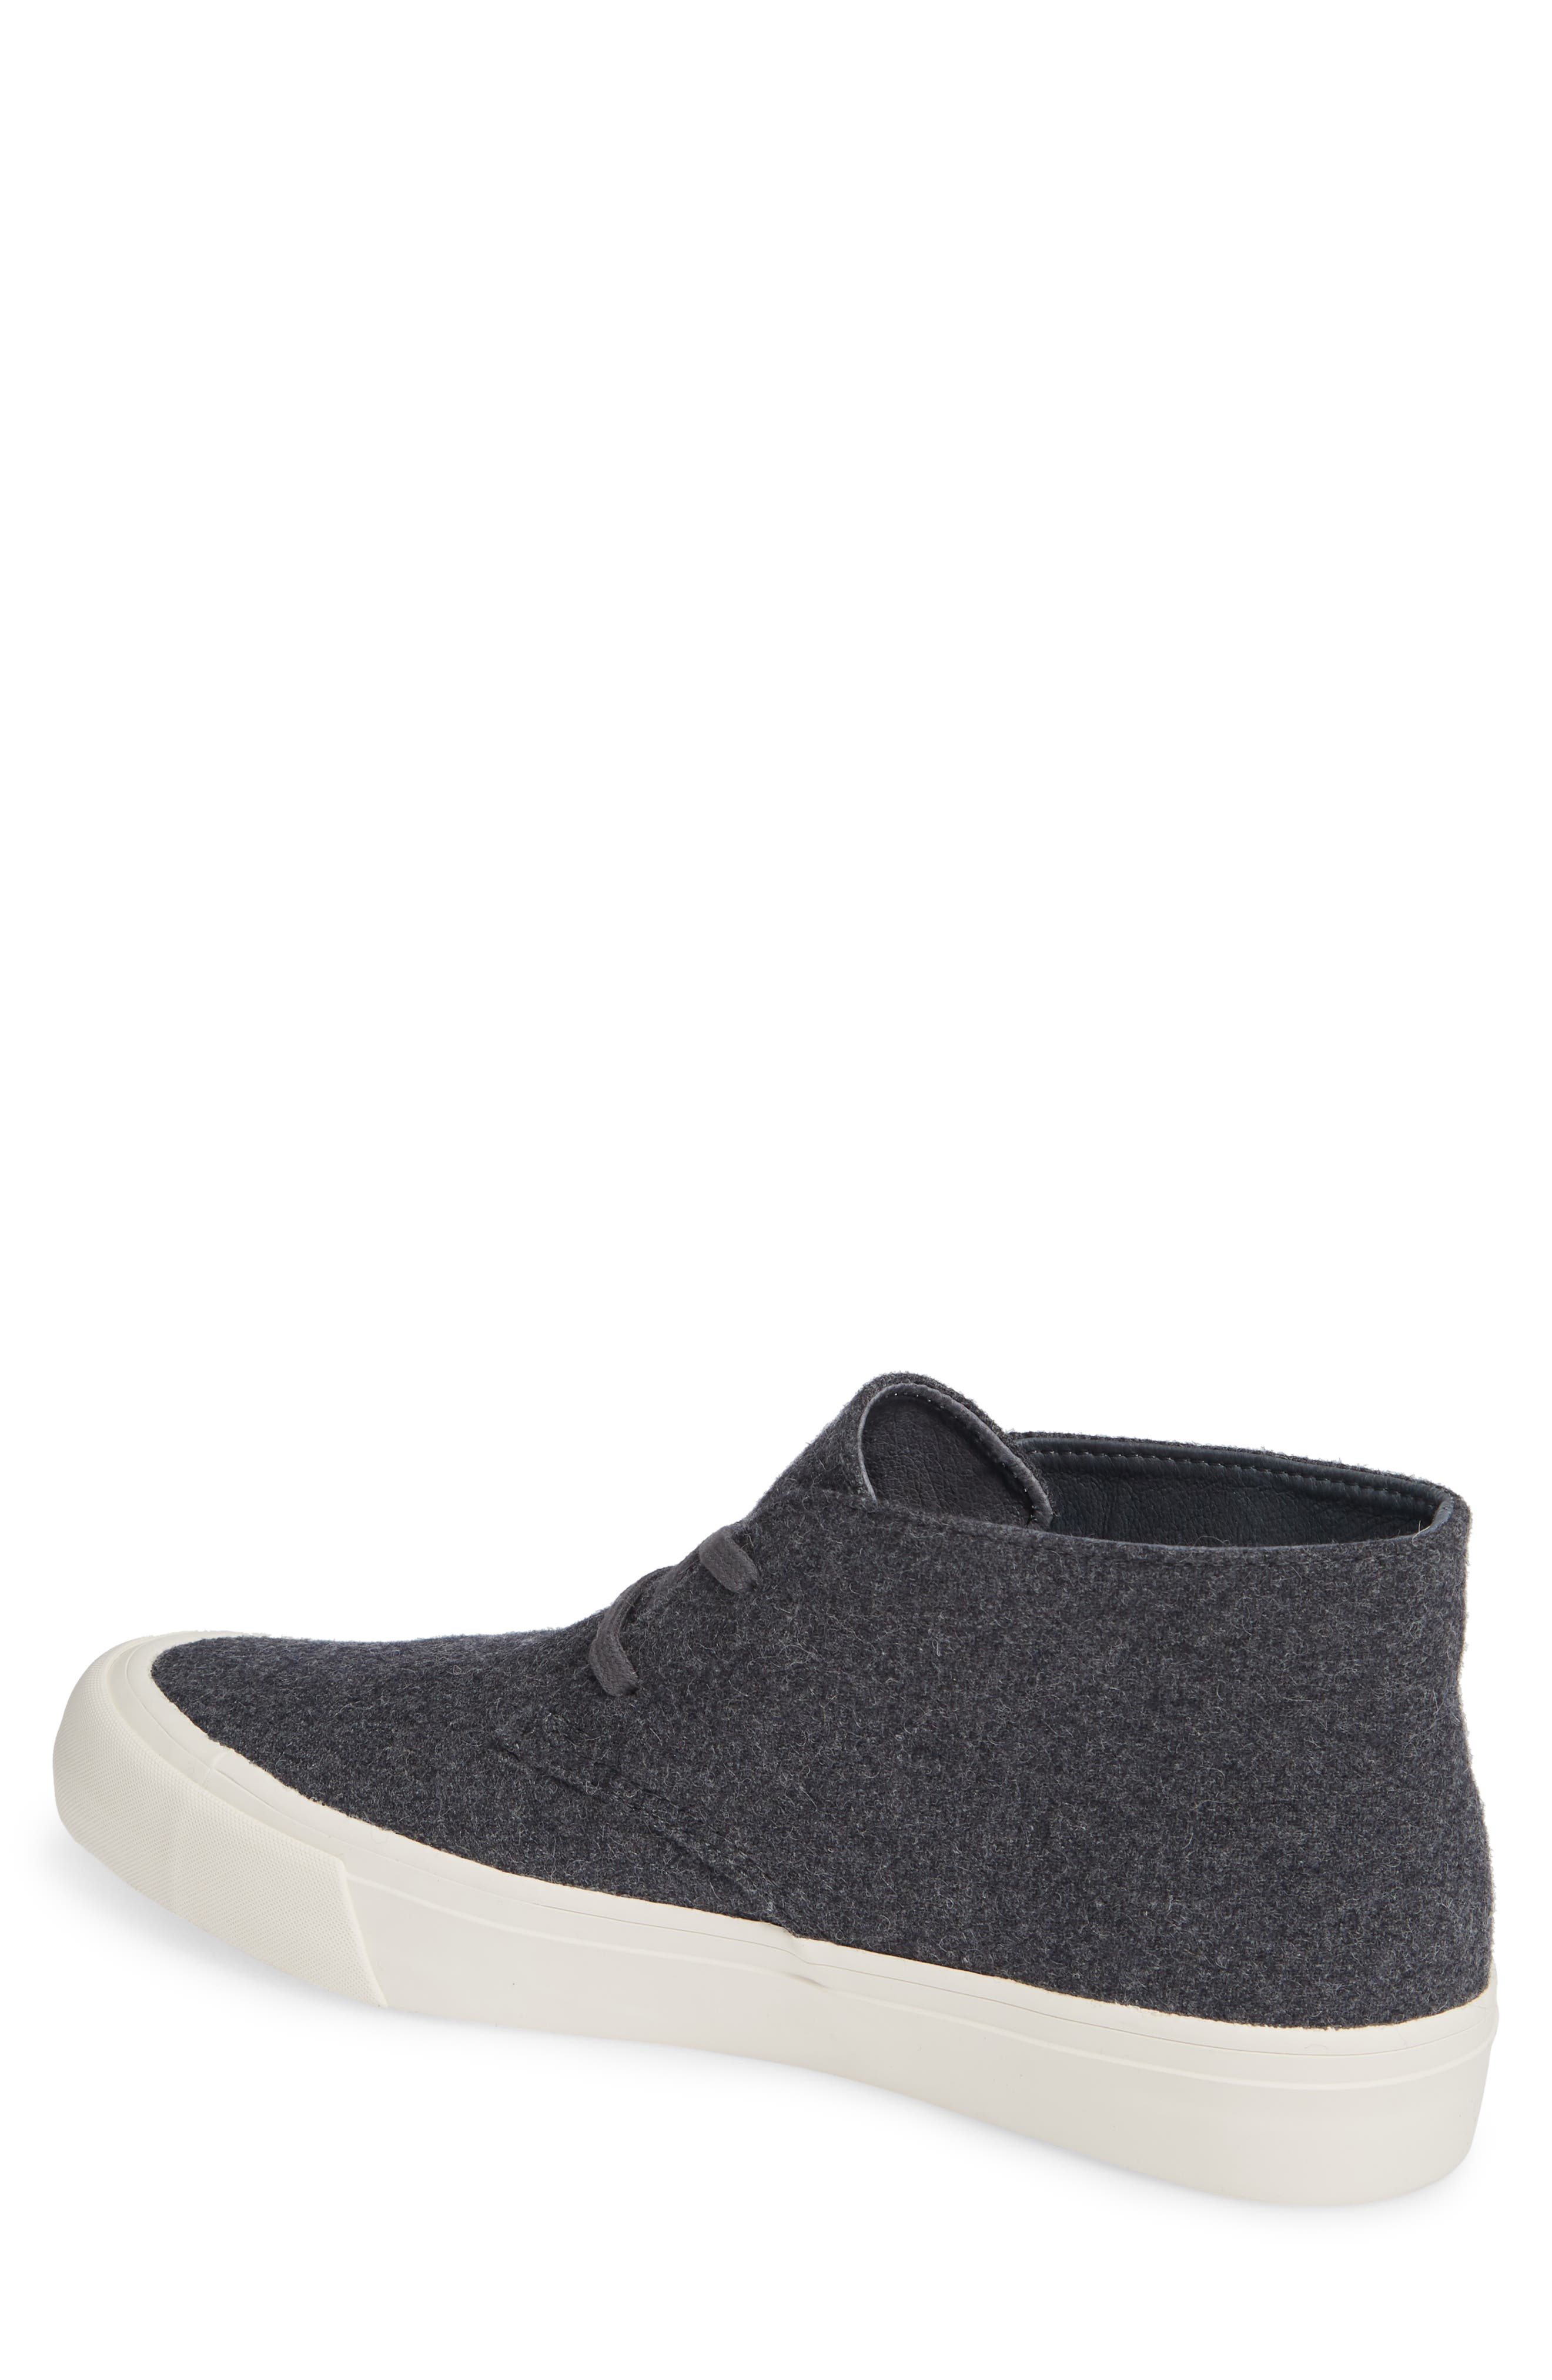 Maslon Chukka Sneaker,                             Alternate thumbnail 2, color,                             CHARCOAL WOOL FLANNEL